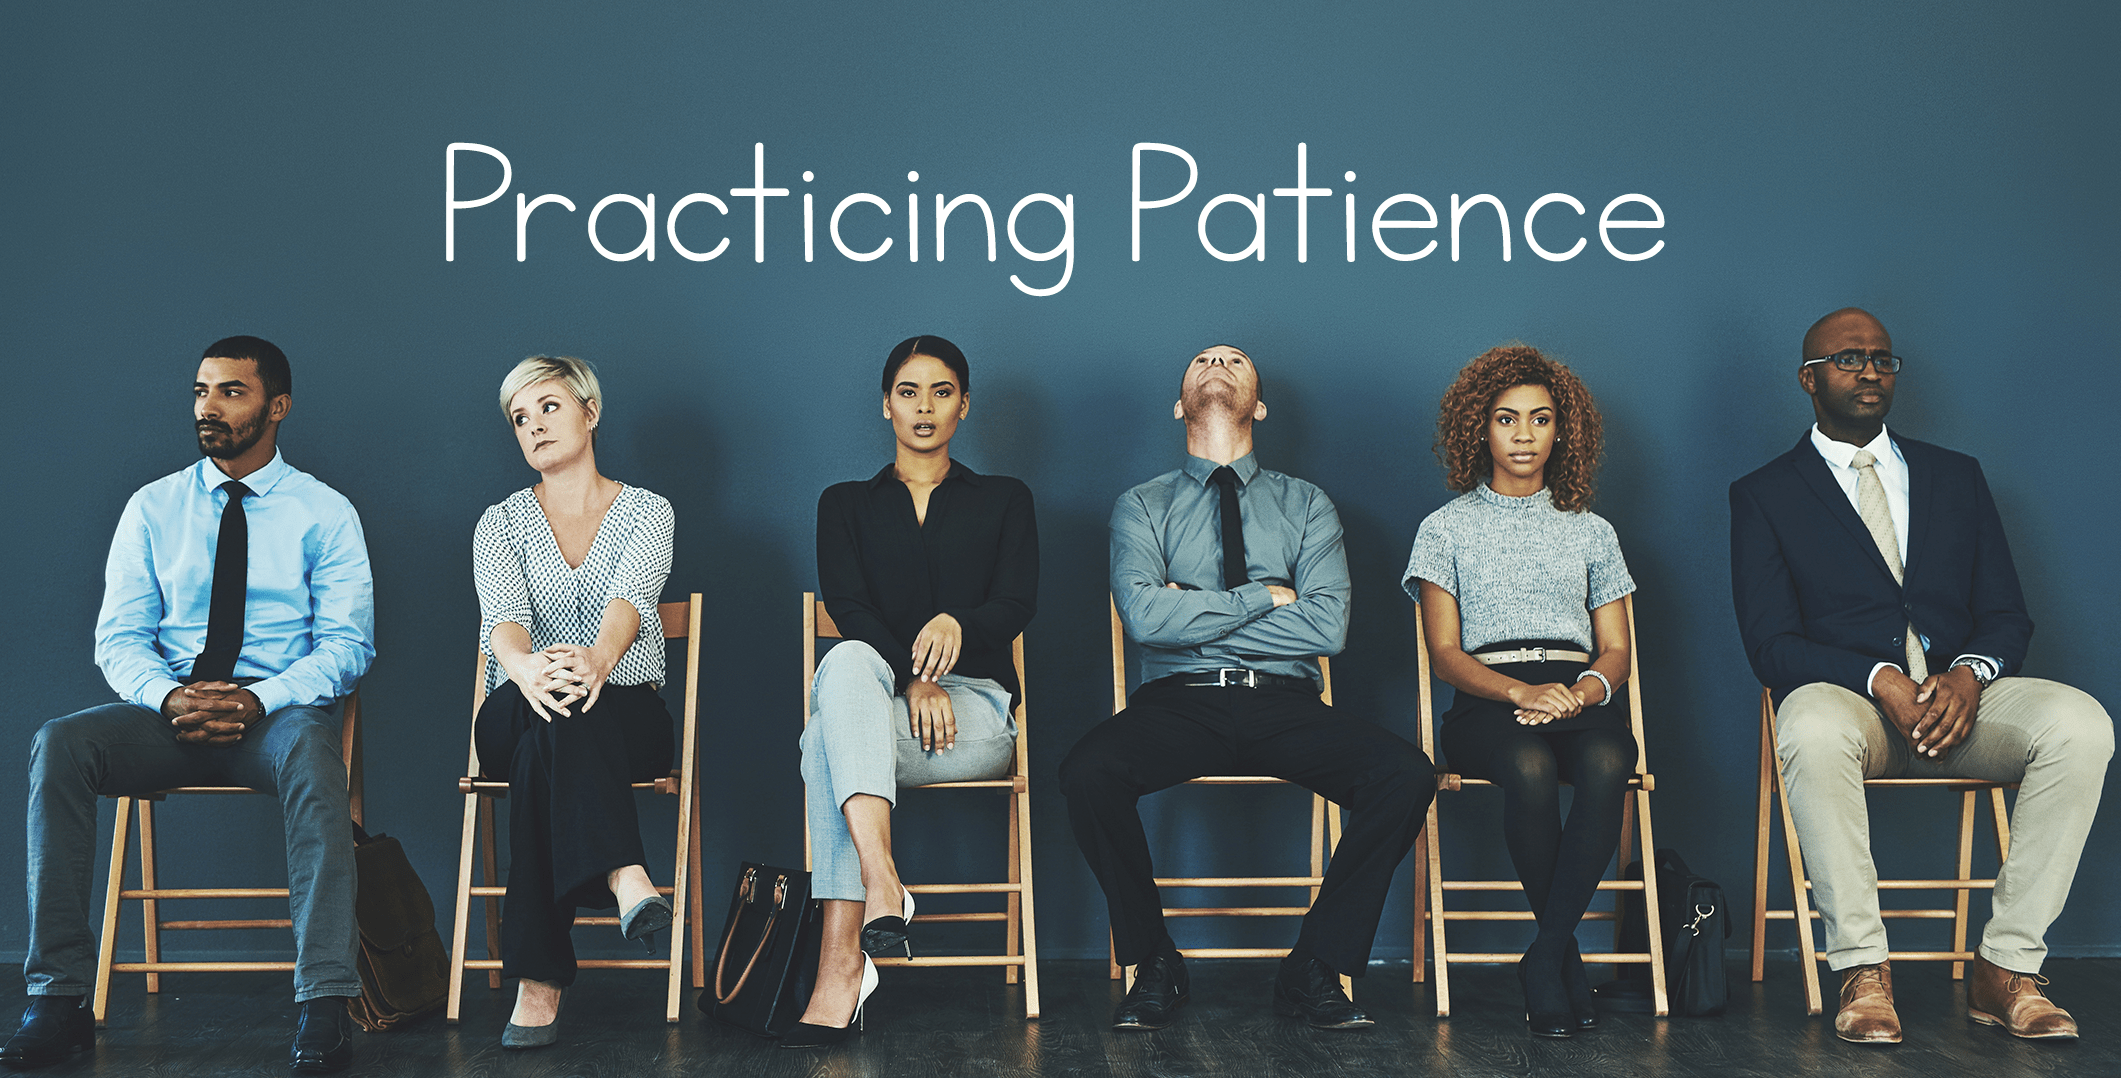 image of professionally dressed adults sitting on chairs in front of a blue wall with the words Practicing Patience